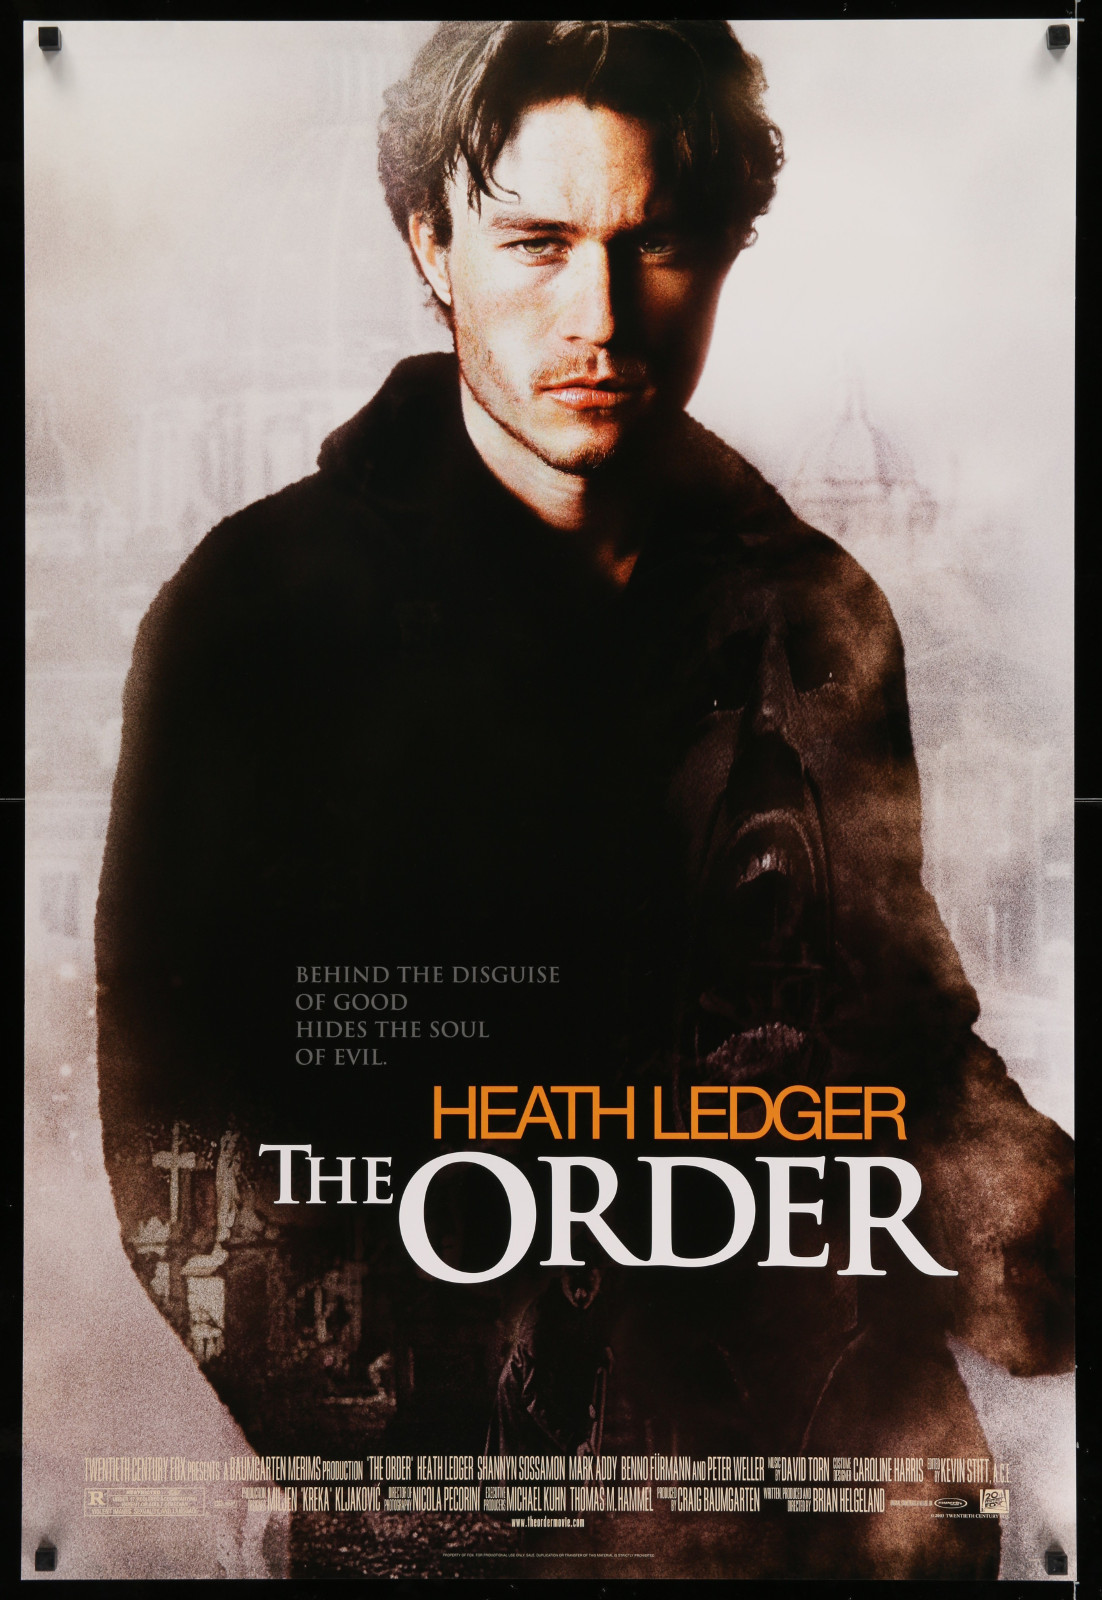 The Order 2A446 A Part Of A Lot 17 Unfolded Mostly Double-Sided 27X40 One-Sheets '90S-00S Great Movie Images!